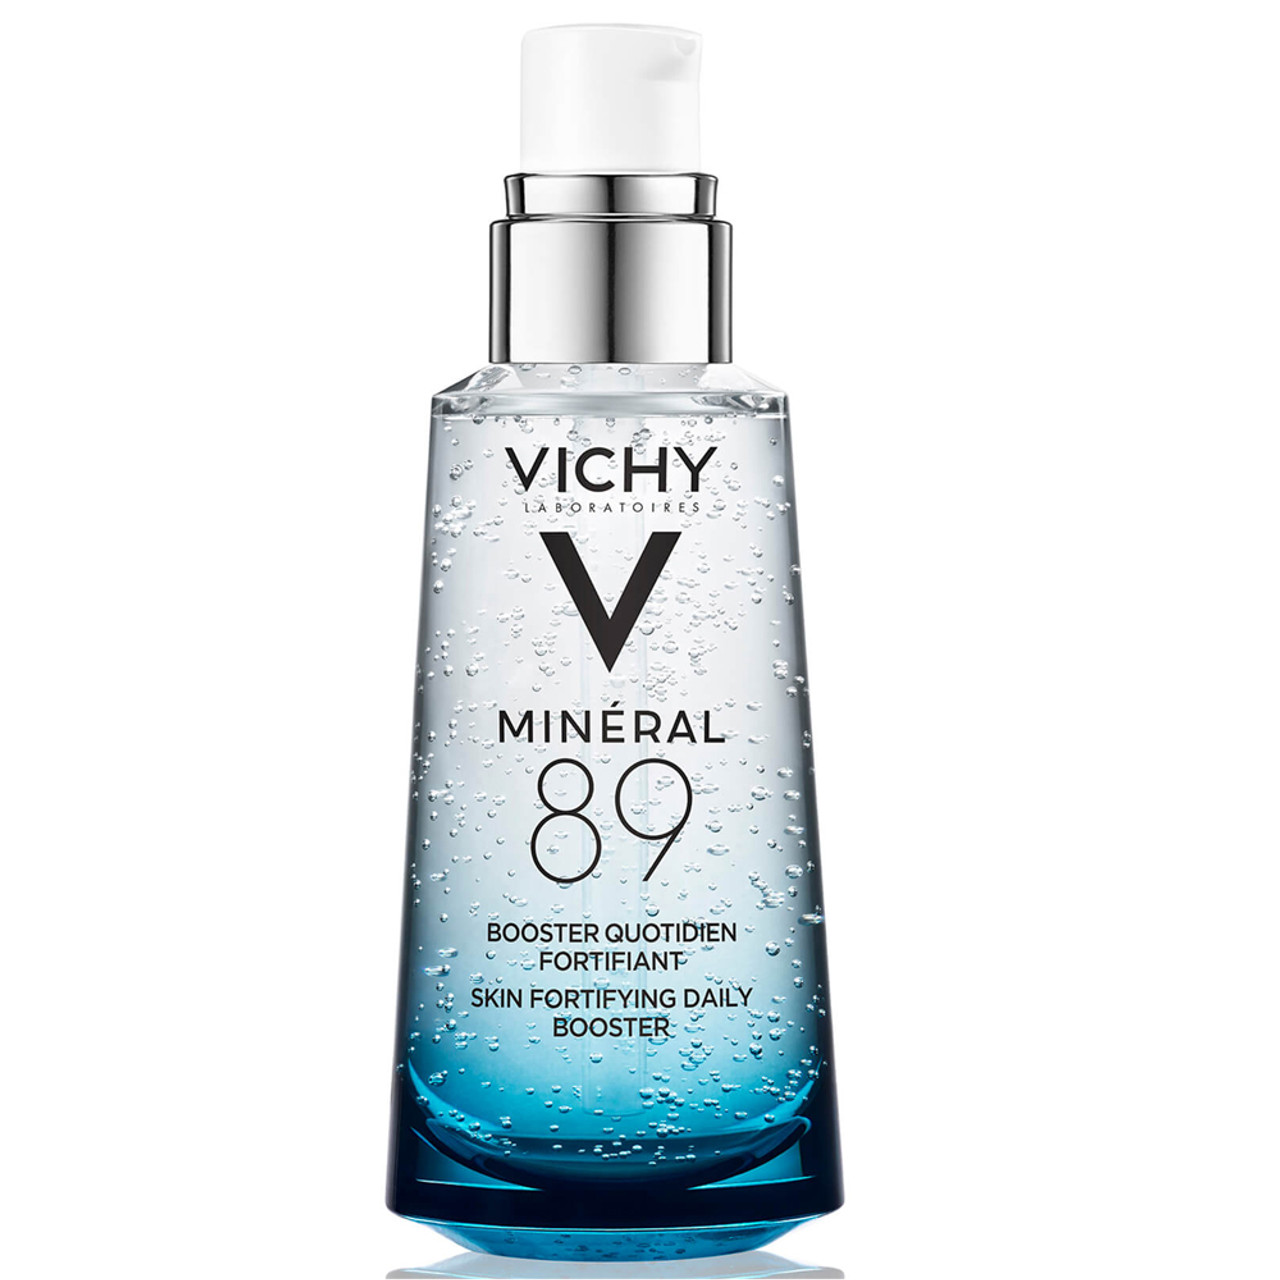 Vichy Mineral 89 Hyaluronic Acid Face Moisturizer BeautifiedYou.com